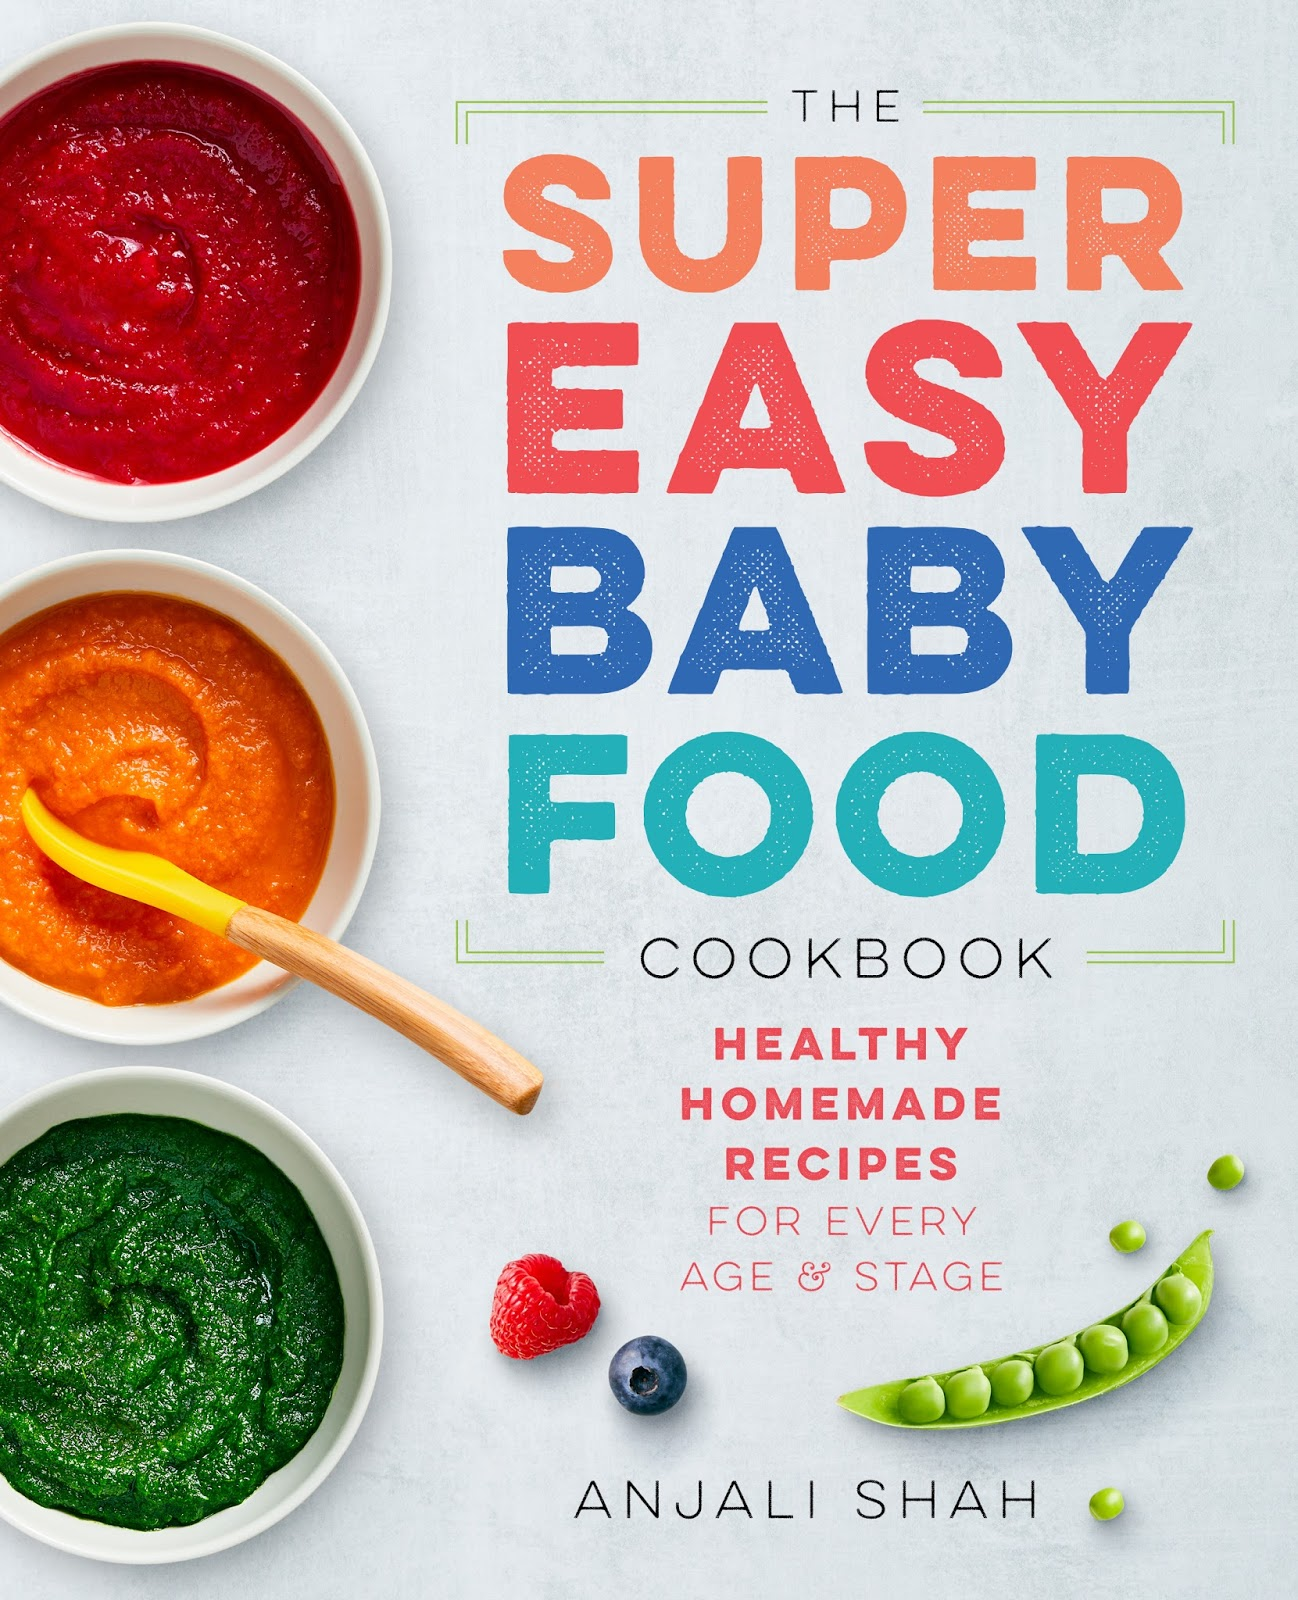 The non housewives the super easy baby food cookbook review the super easy baby food cookbook contains healthy homemade recipes for infants through toddler years the author anjali shah also provides tips for forumfinder Image collections